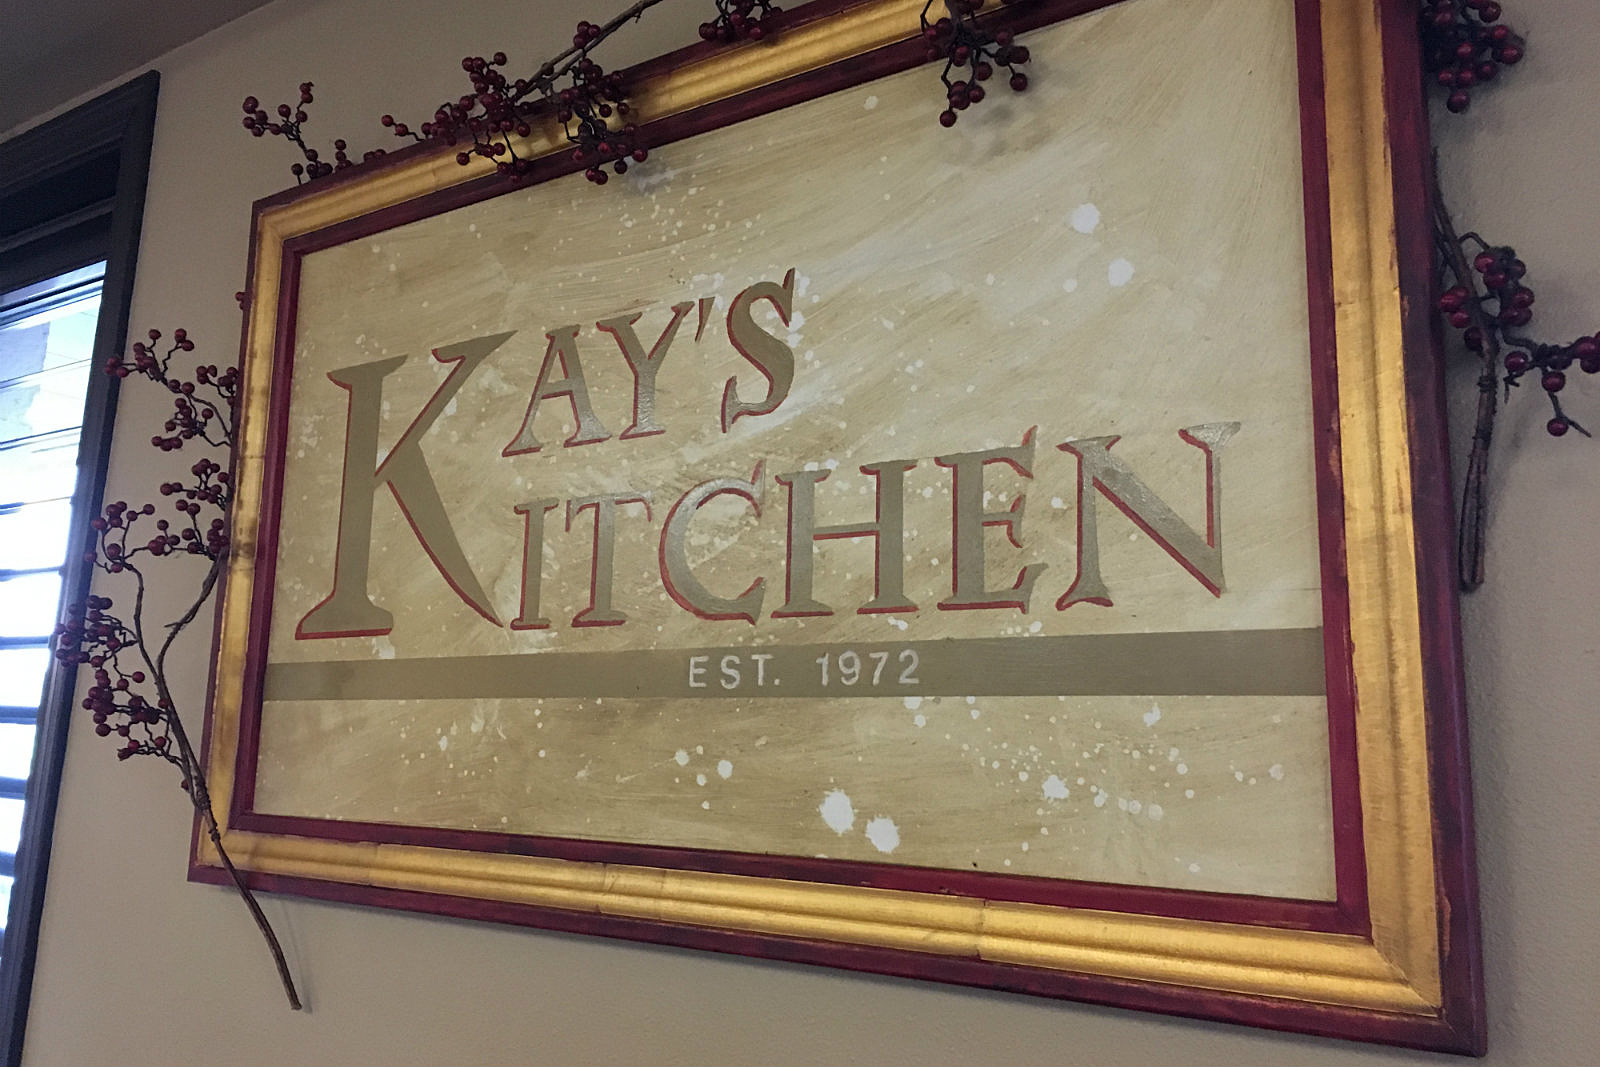 Kays Kitchen to Open New Restaurant in St Cloud